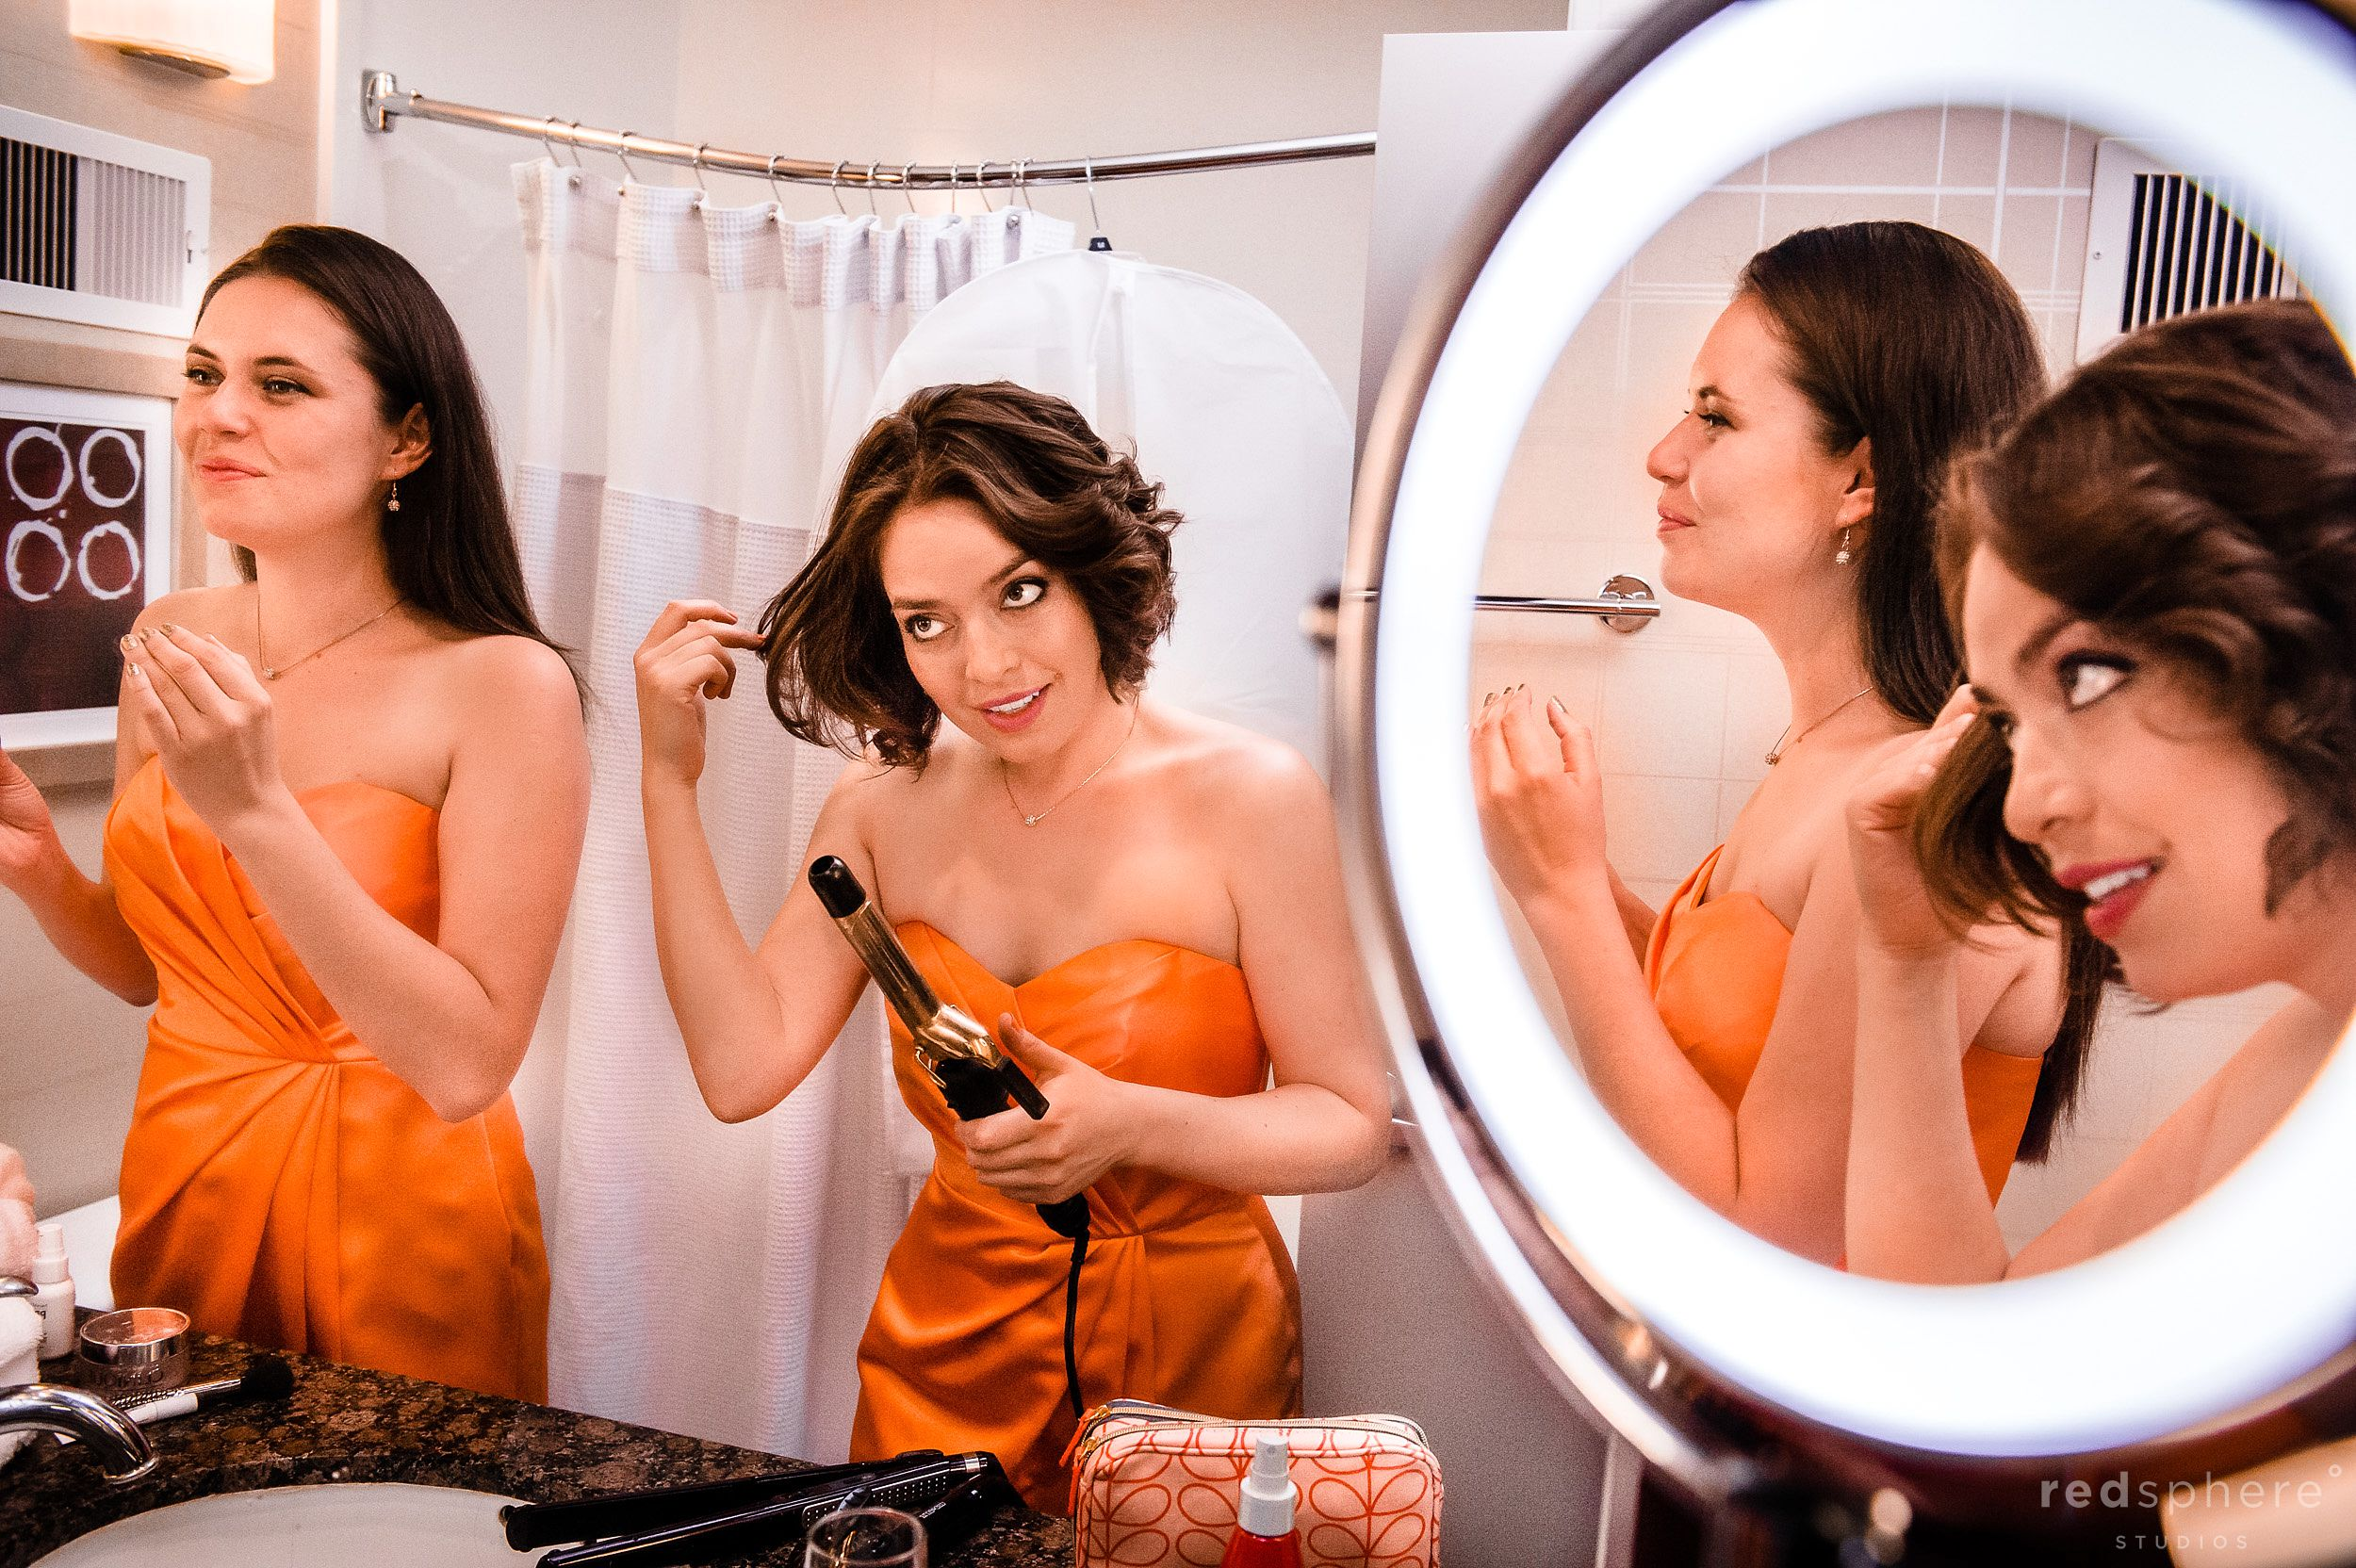 Bridesmaids Curling Hair and Putting on Makeup in the Bathroom